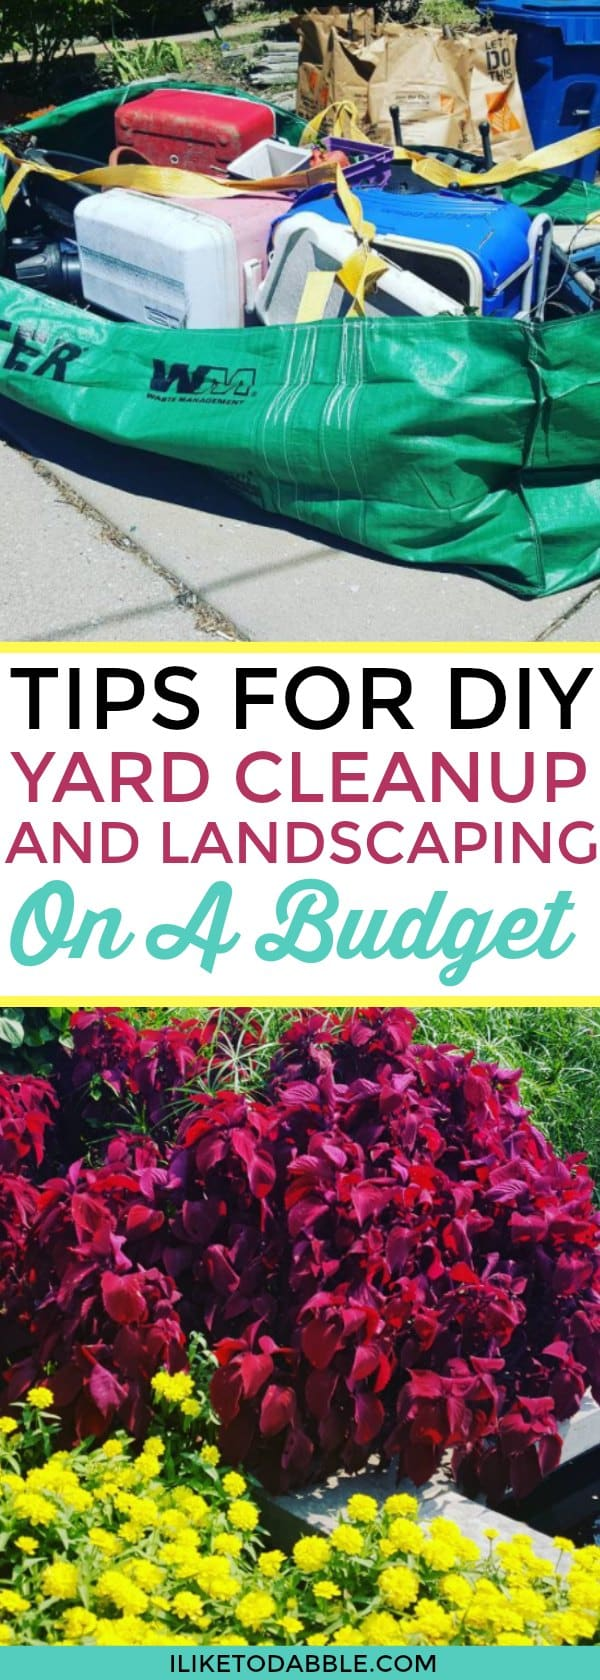 Tips for diy yard cleanup and landscaping on a budget. Landscaping on a budget. Budgeting tips. Frugal and thirfty living. Saving money. Home and garden. Home improvement. #budgetingtips #homeandgarden #yardcleanup #landscaping #landscapingforcheap